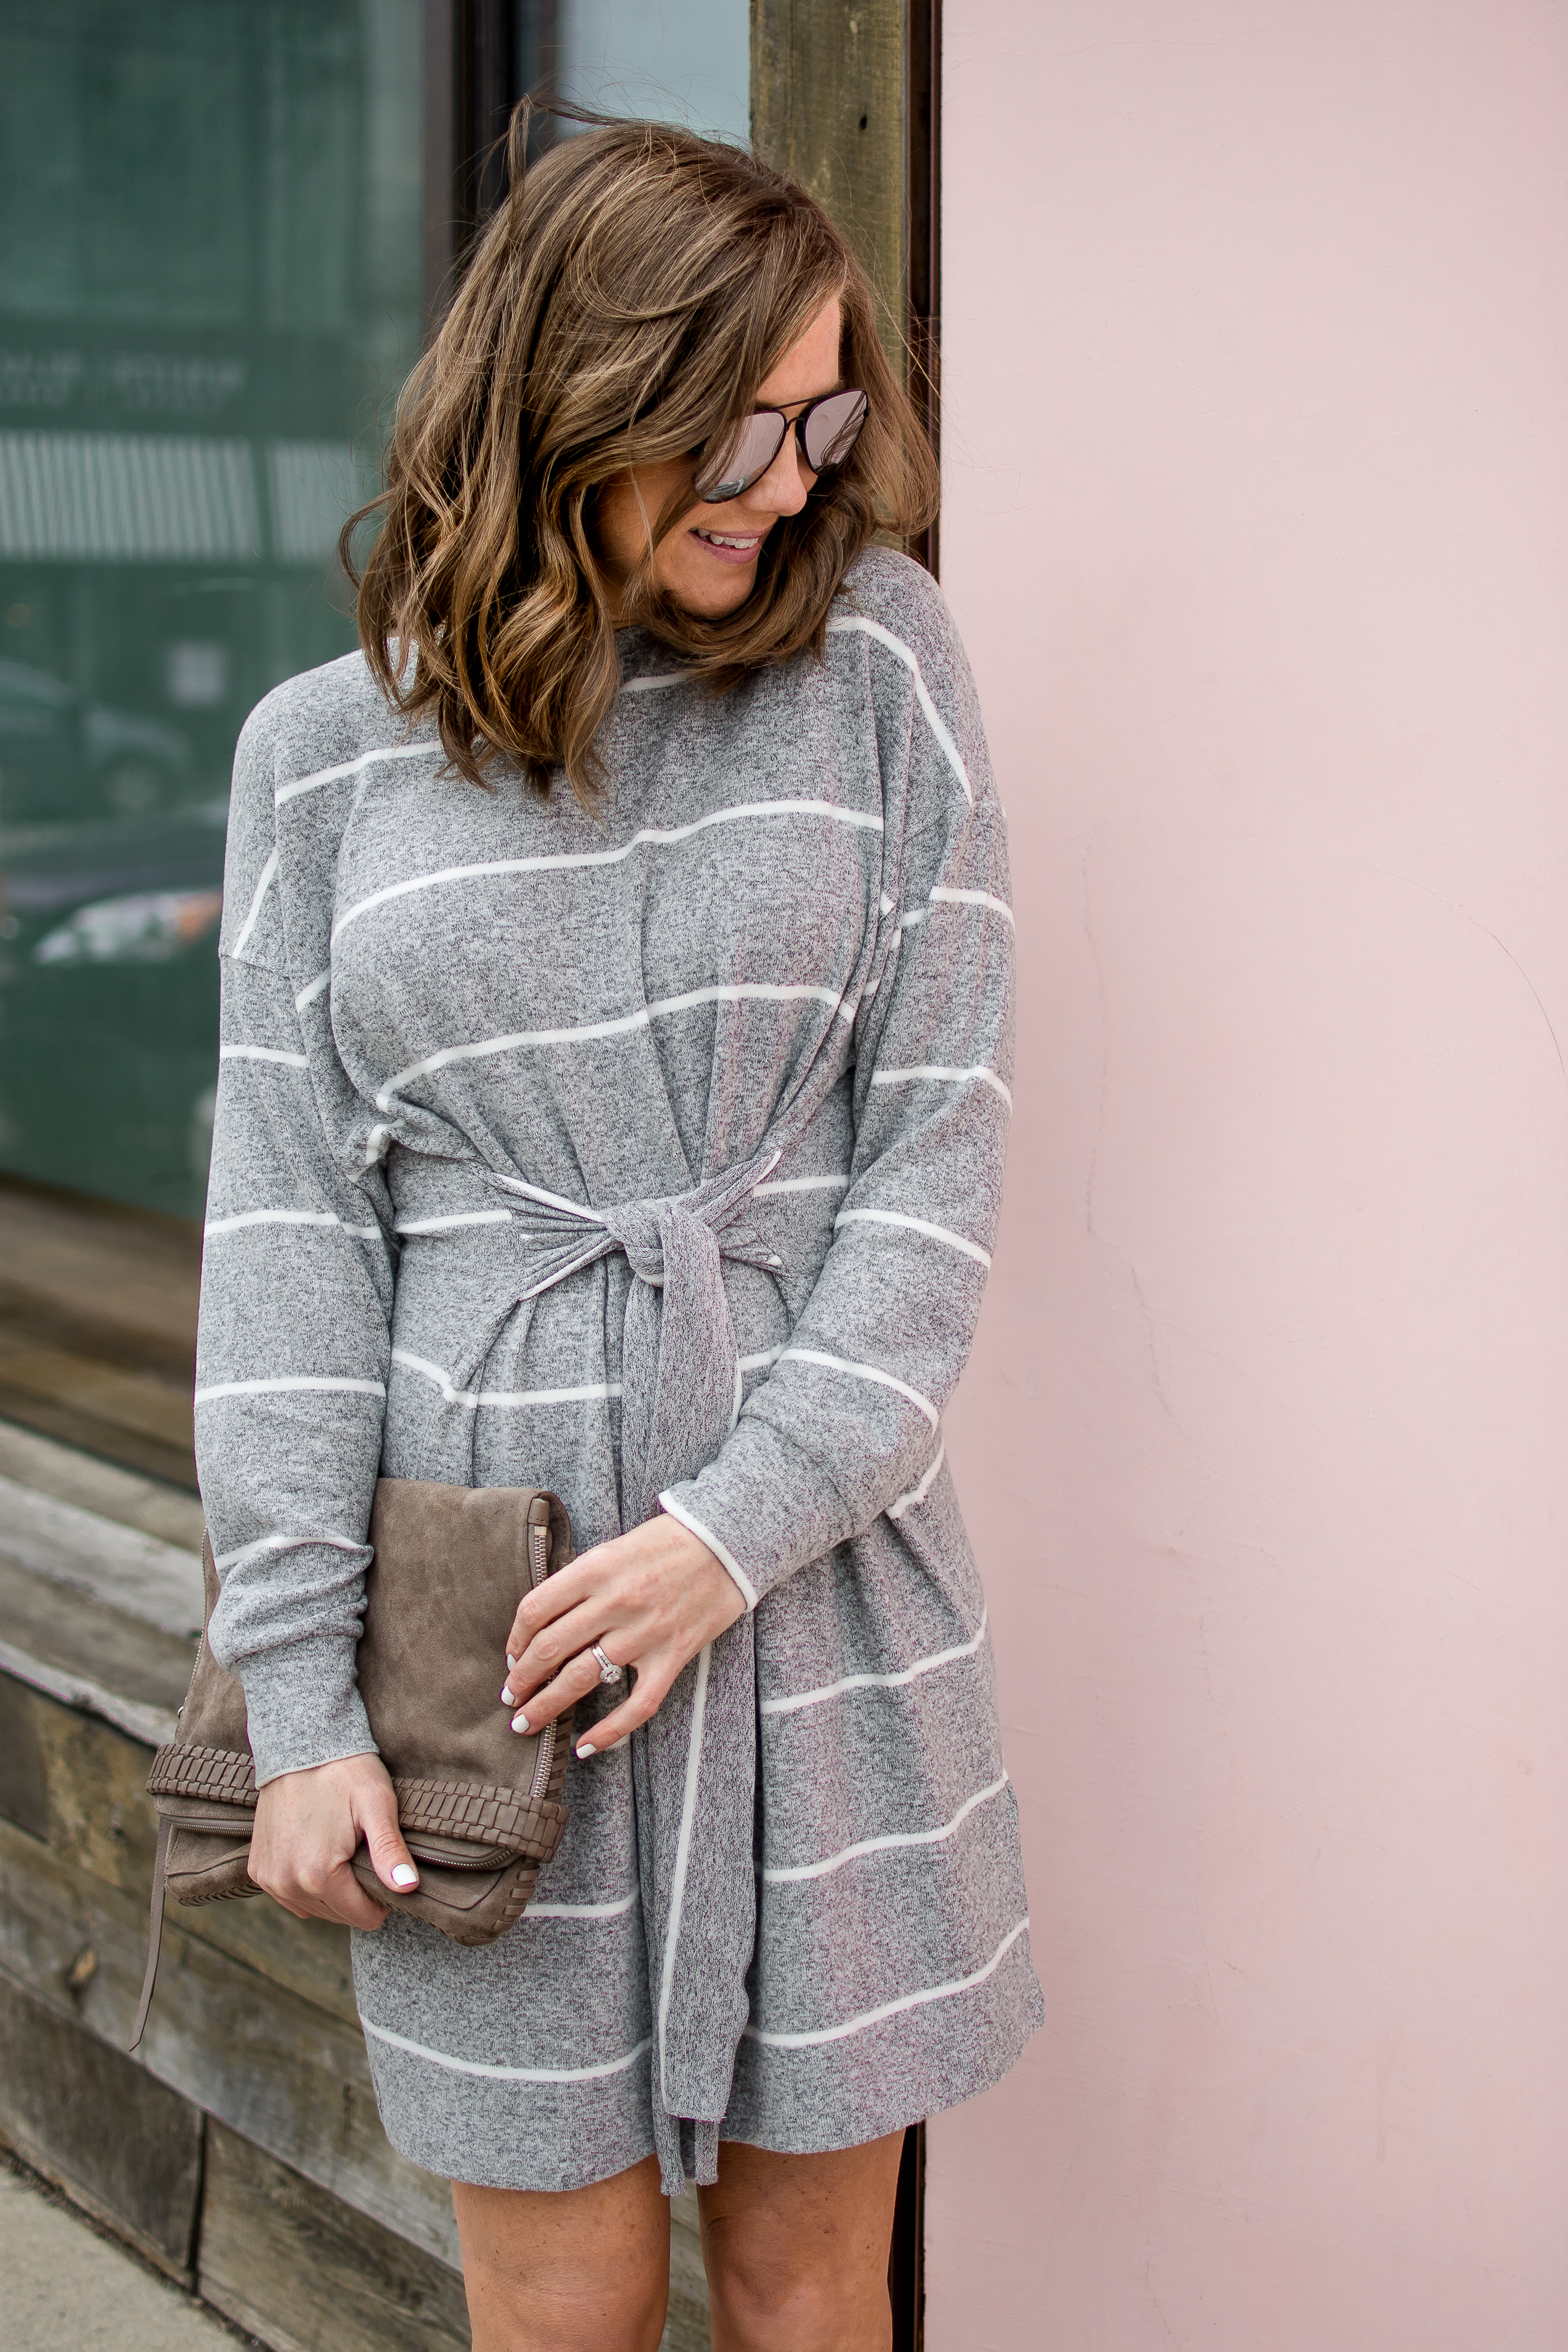 grey tie front dress, sweatshirt dress, the most flattering dress silhouette, spring neutrals, Topshop self tie sweater dress